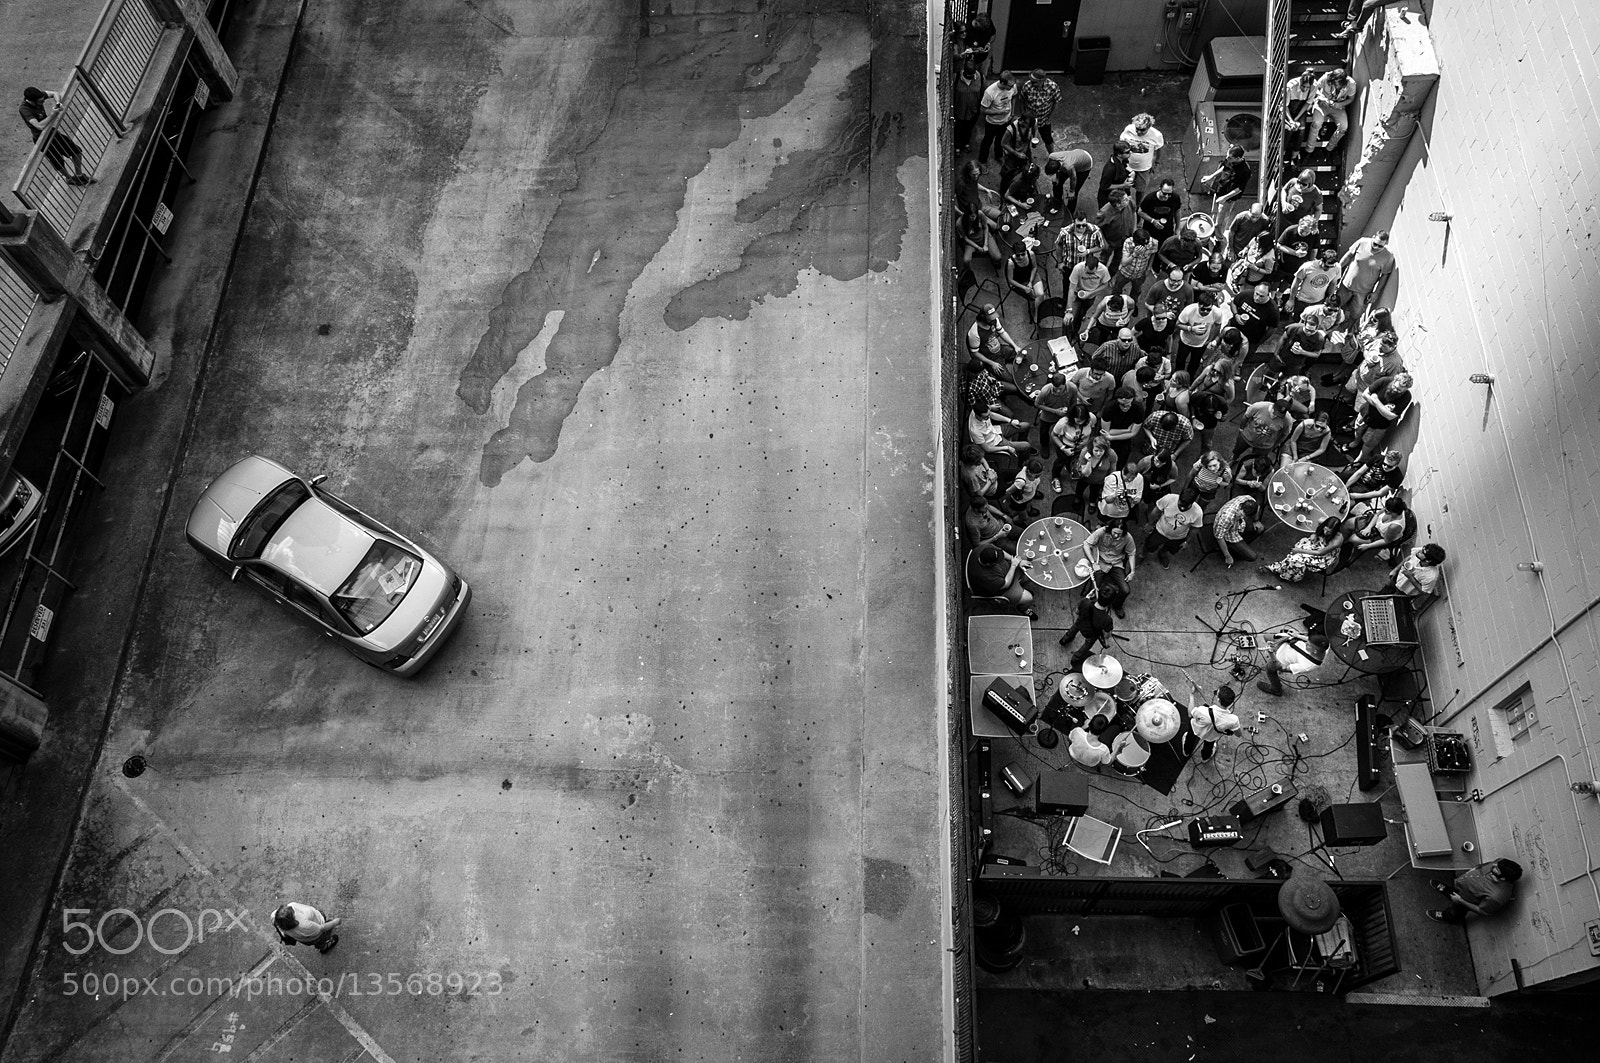 Photograph Block Party by Adam Bellefeuil on 500px